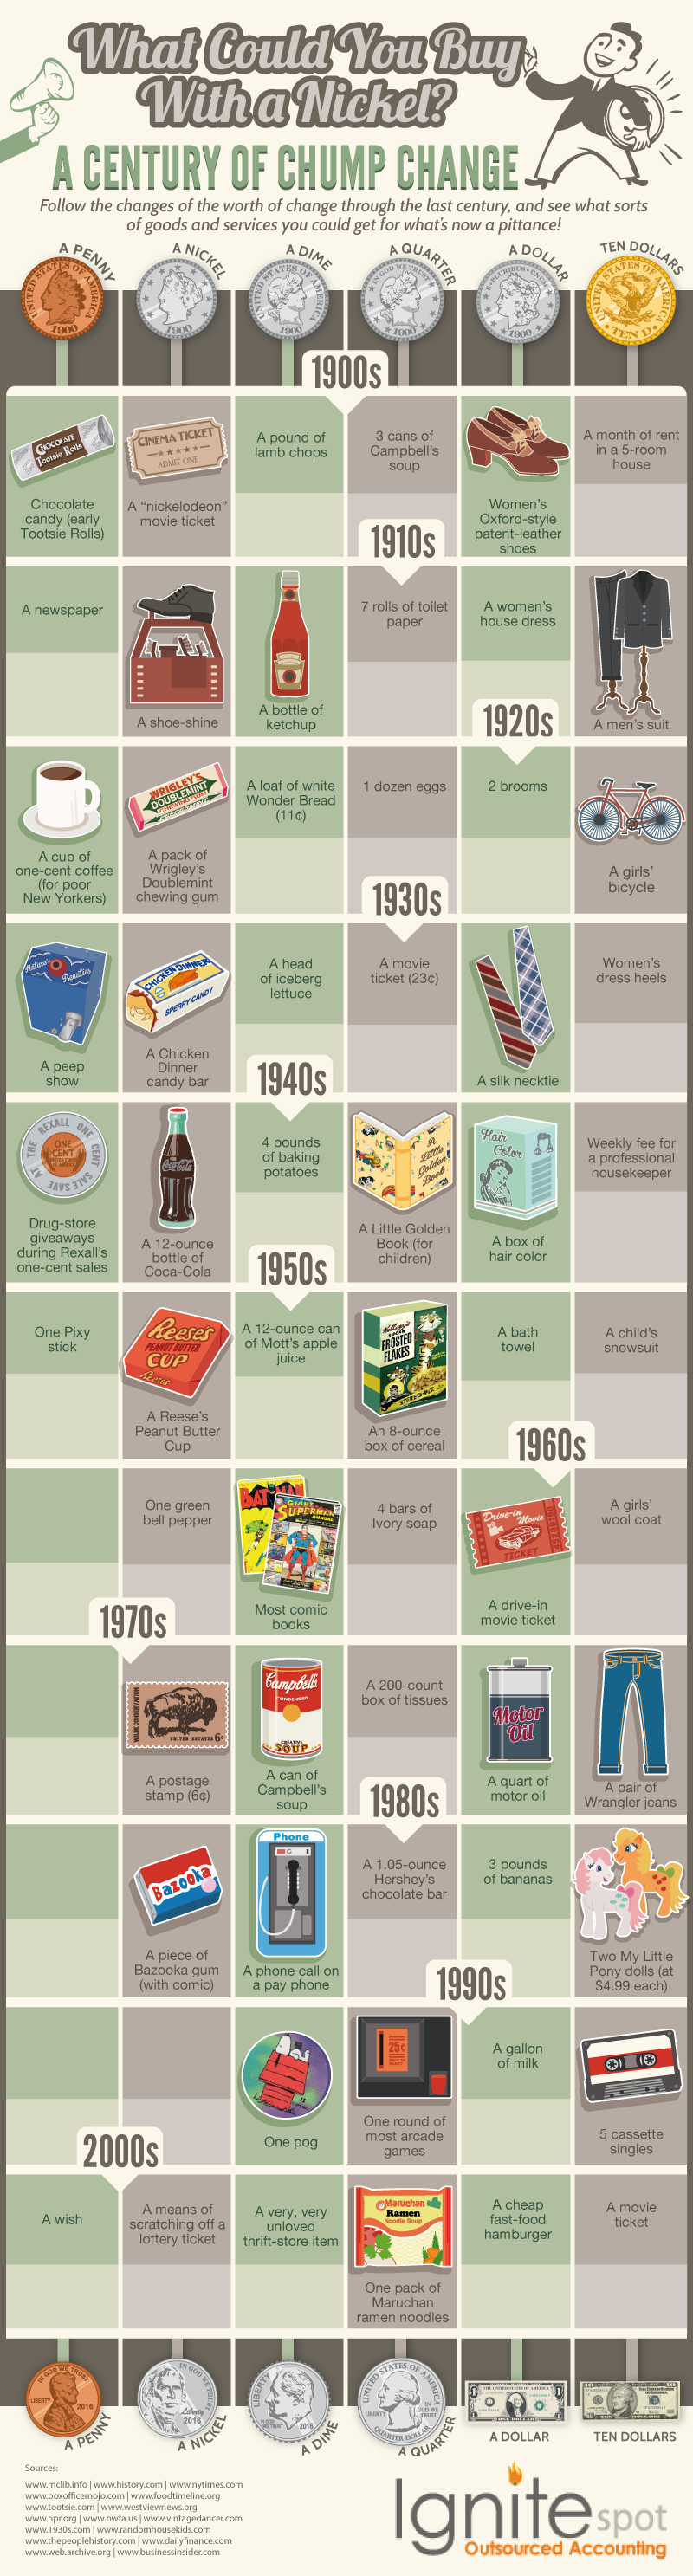 What Could You Buy With a Nickel? Comparing the value of small change through the last century